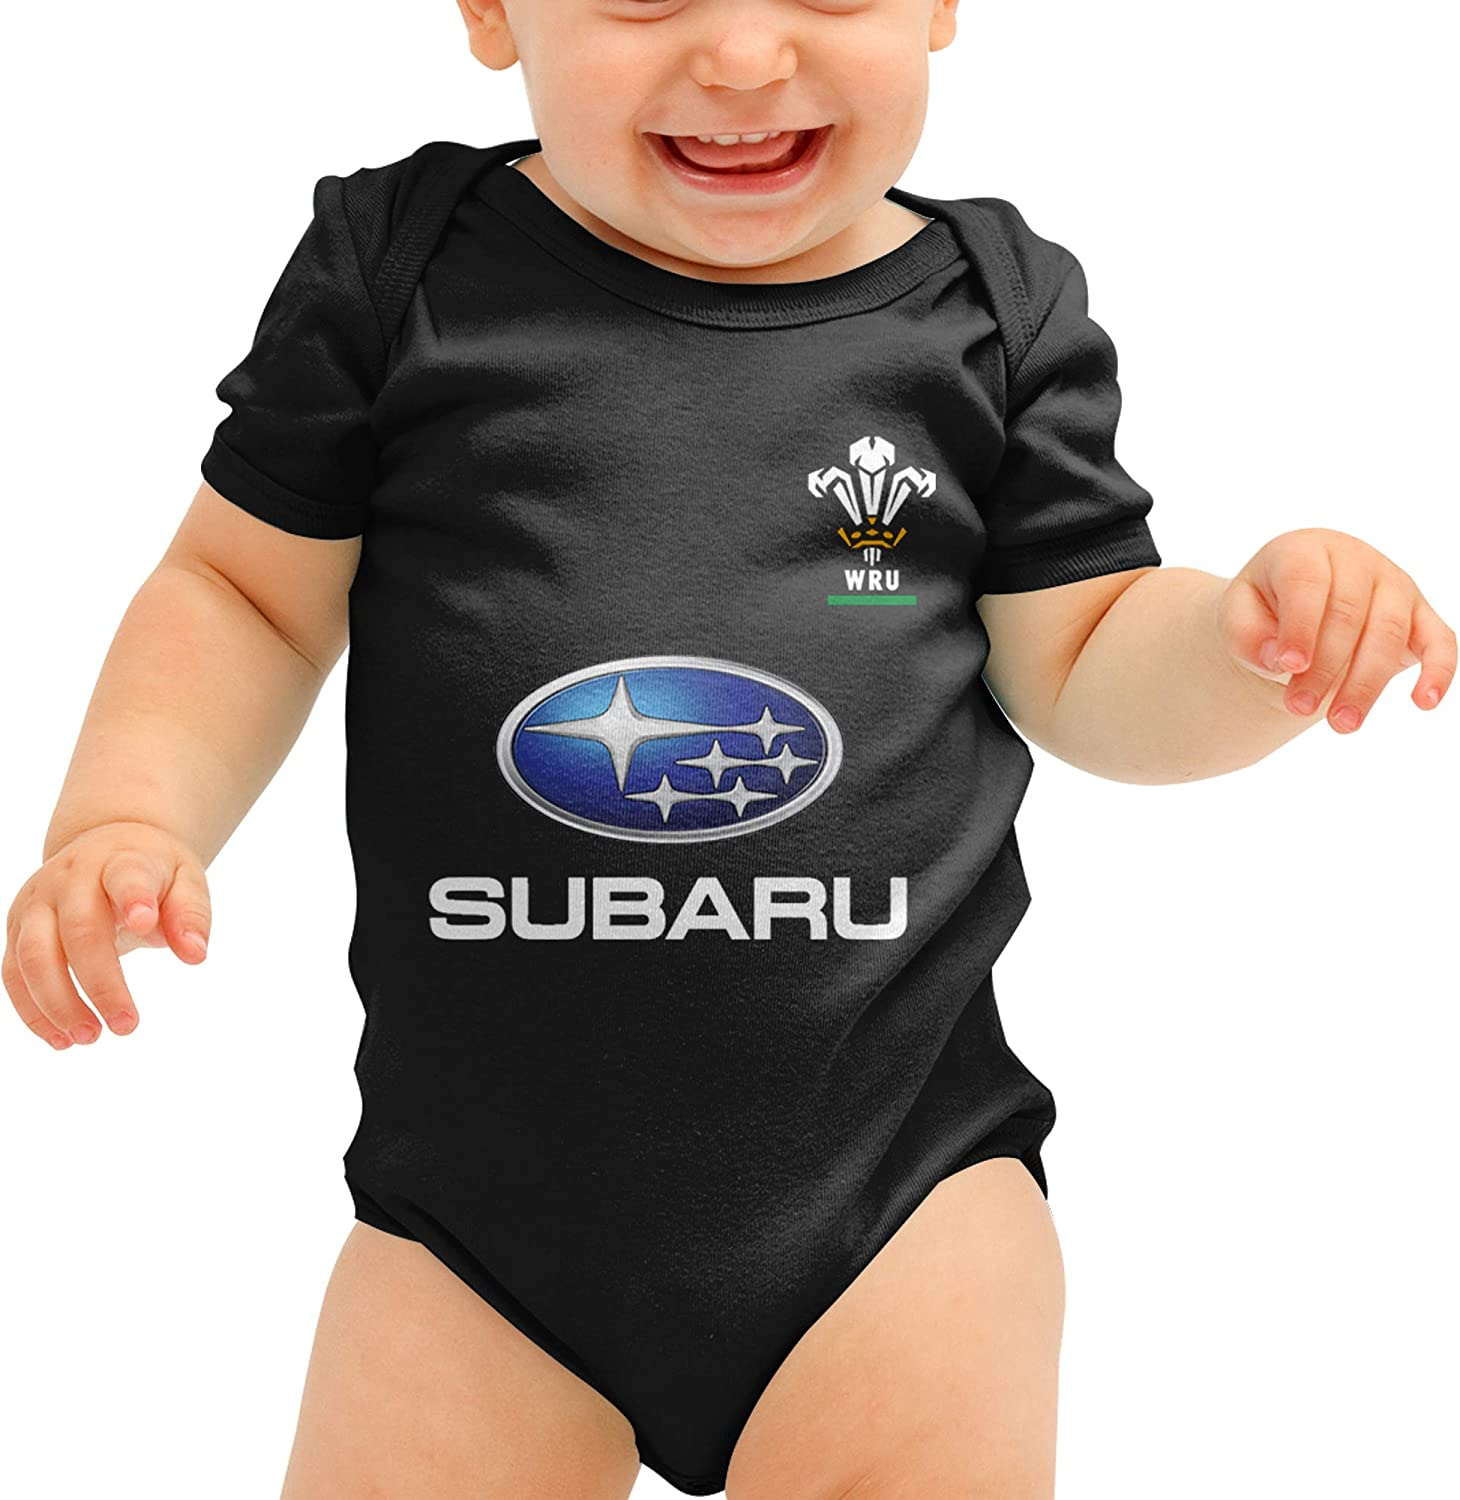 Wales RU Rugby Baby Sleepsuit Baby Grow Kit Design 20//21 Season